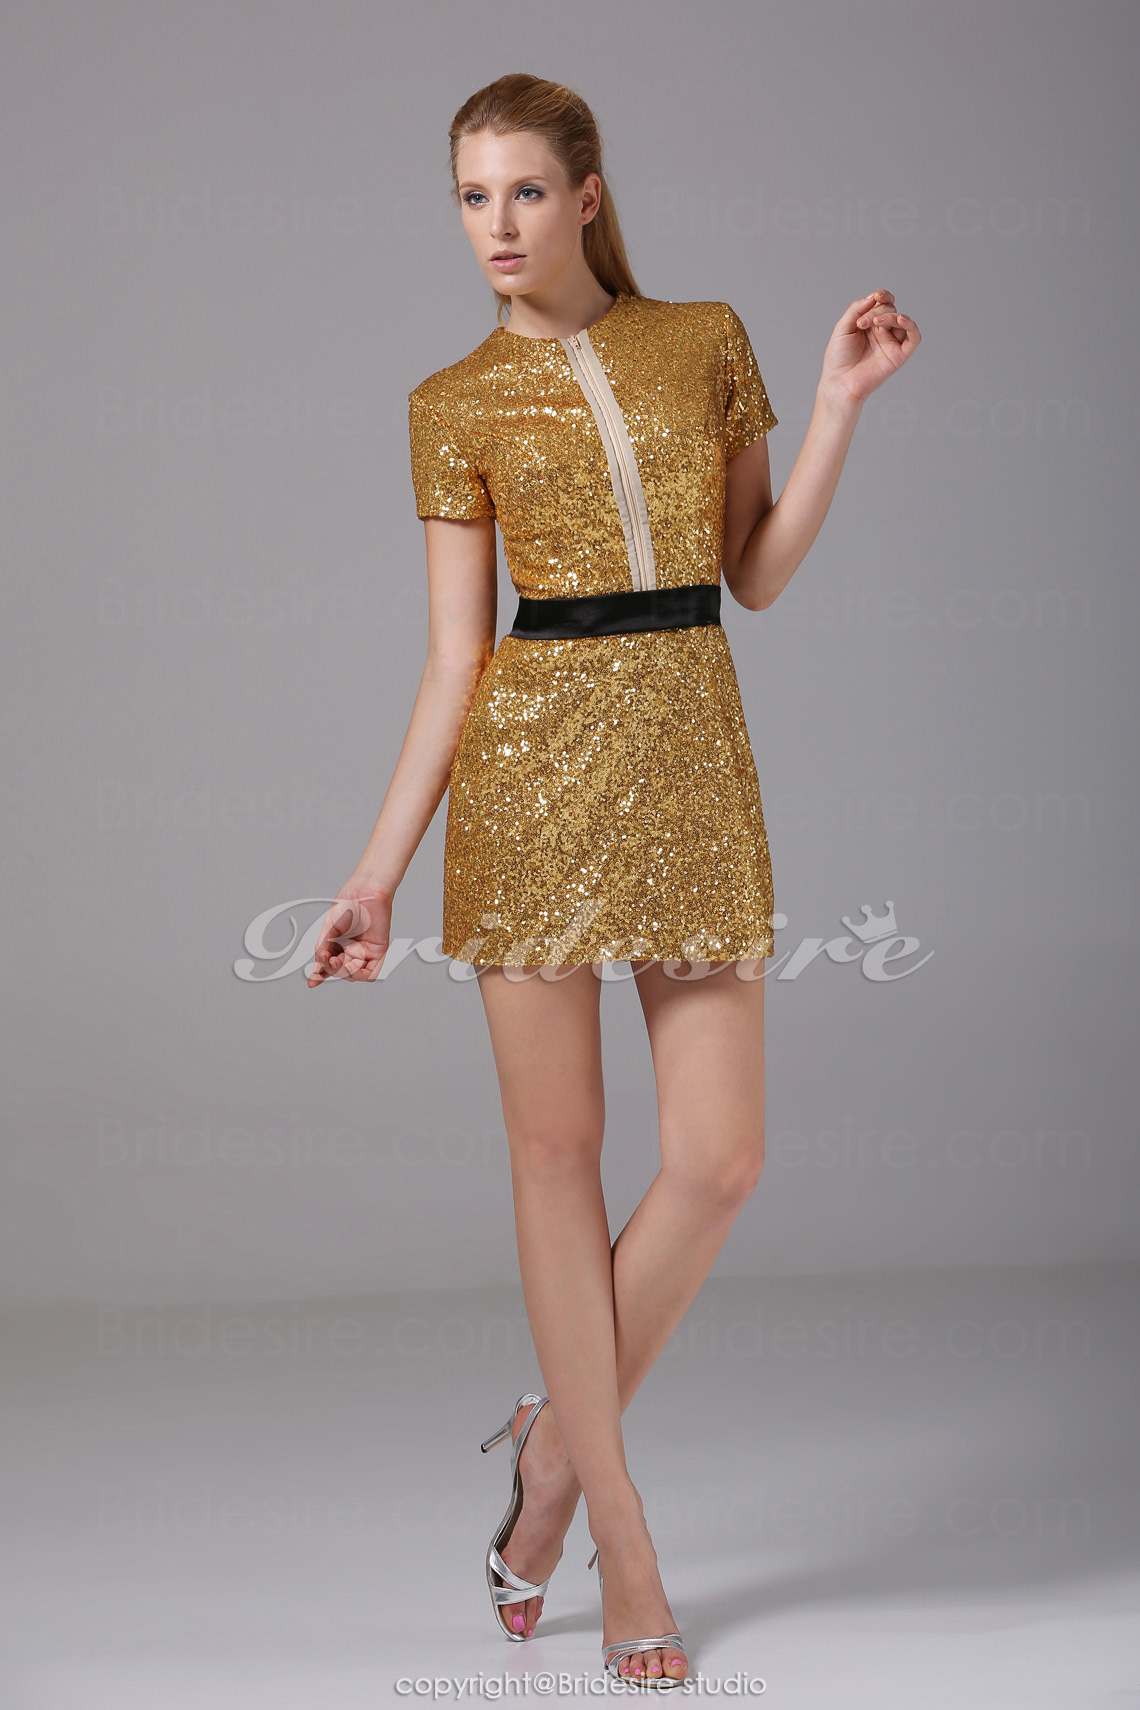 Sheath/Column Scoop Short/Mini Short Sleeve Sequined Satin Dress